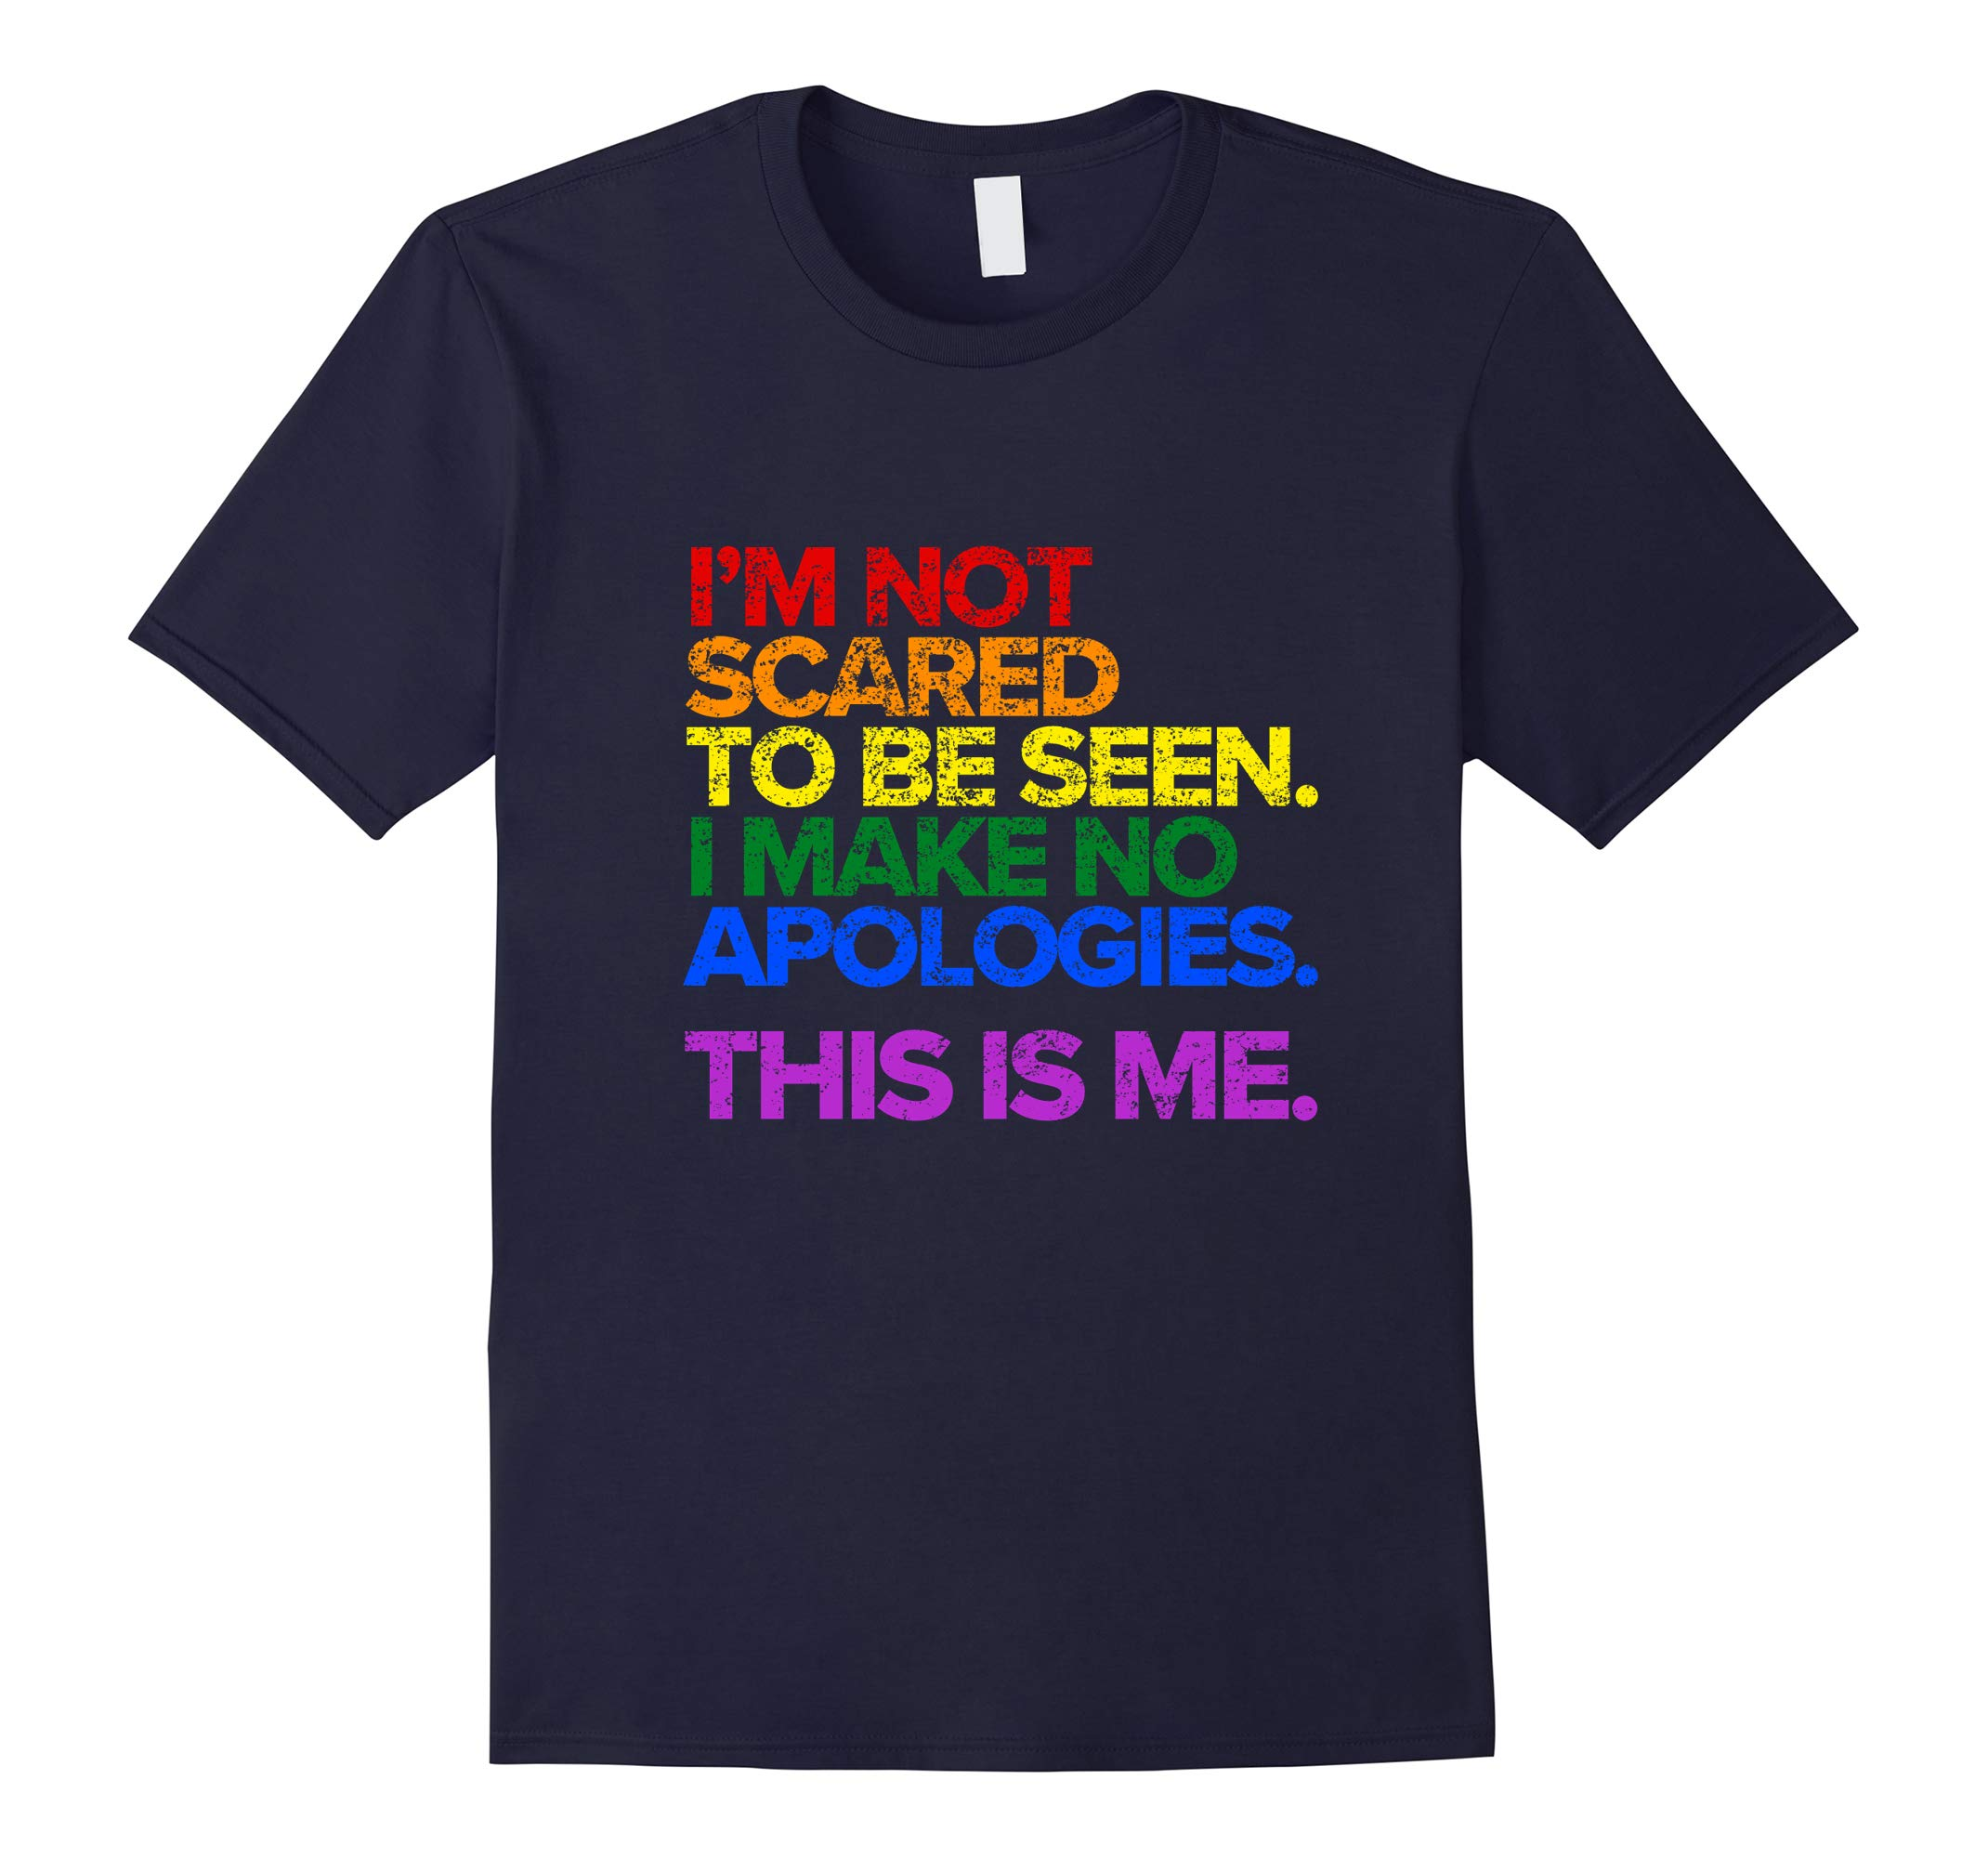 This is Me Inspirational LGBT Pride T-Shirt-RT